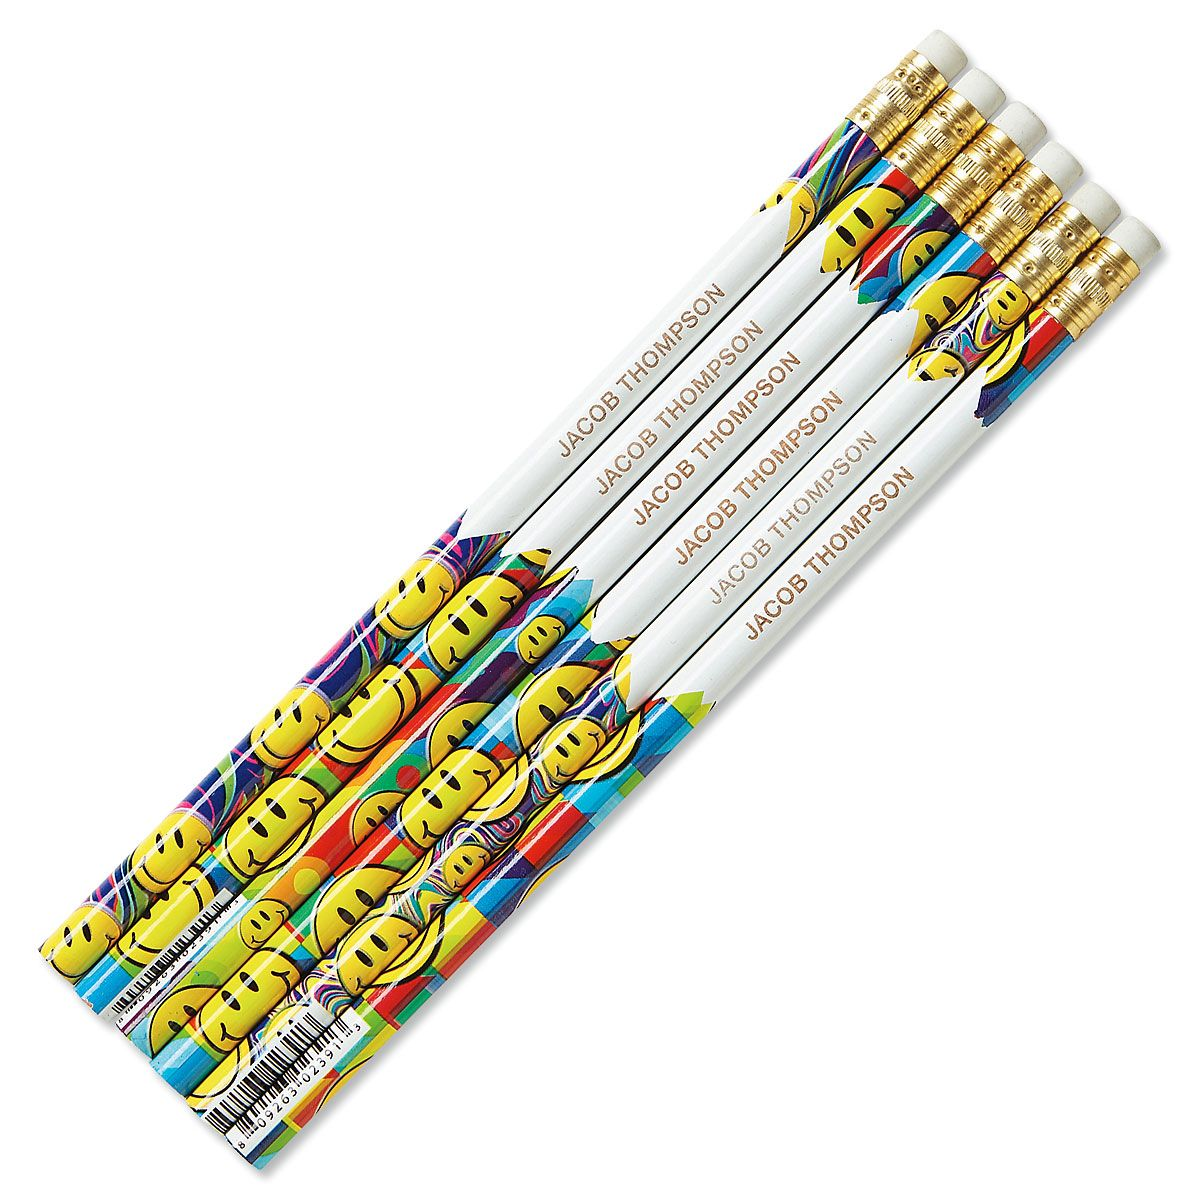 Personalized Smiley Faces Hardwood Pencils